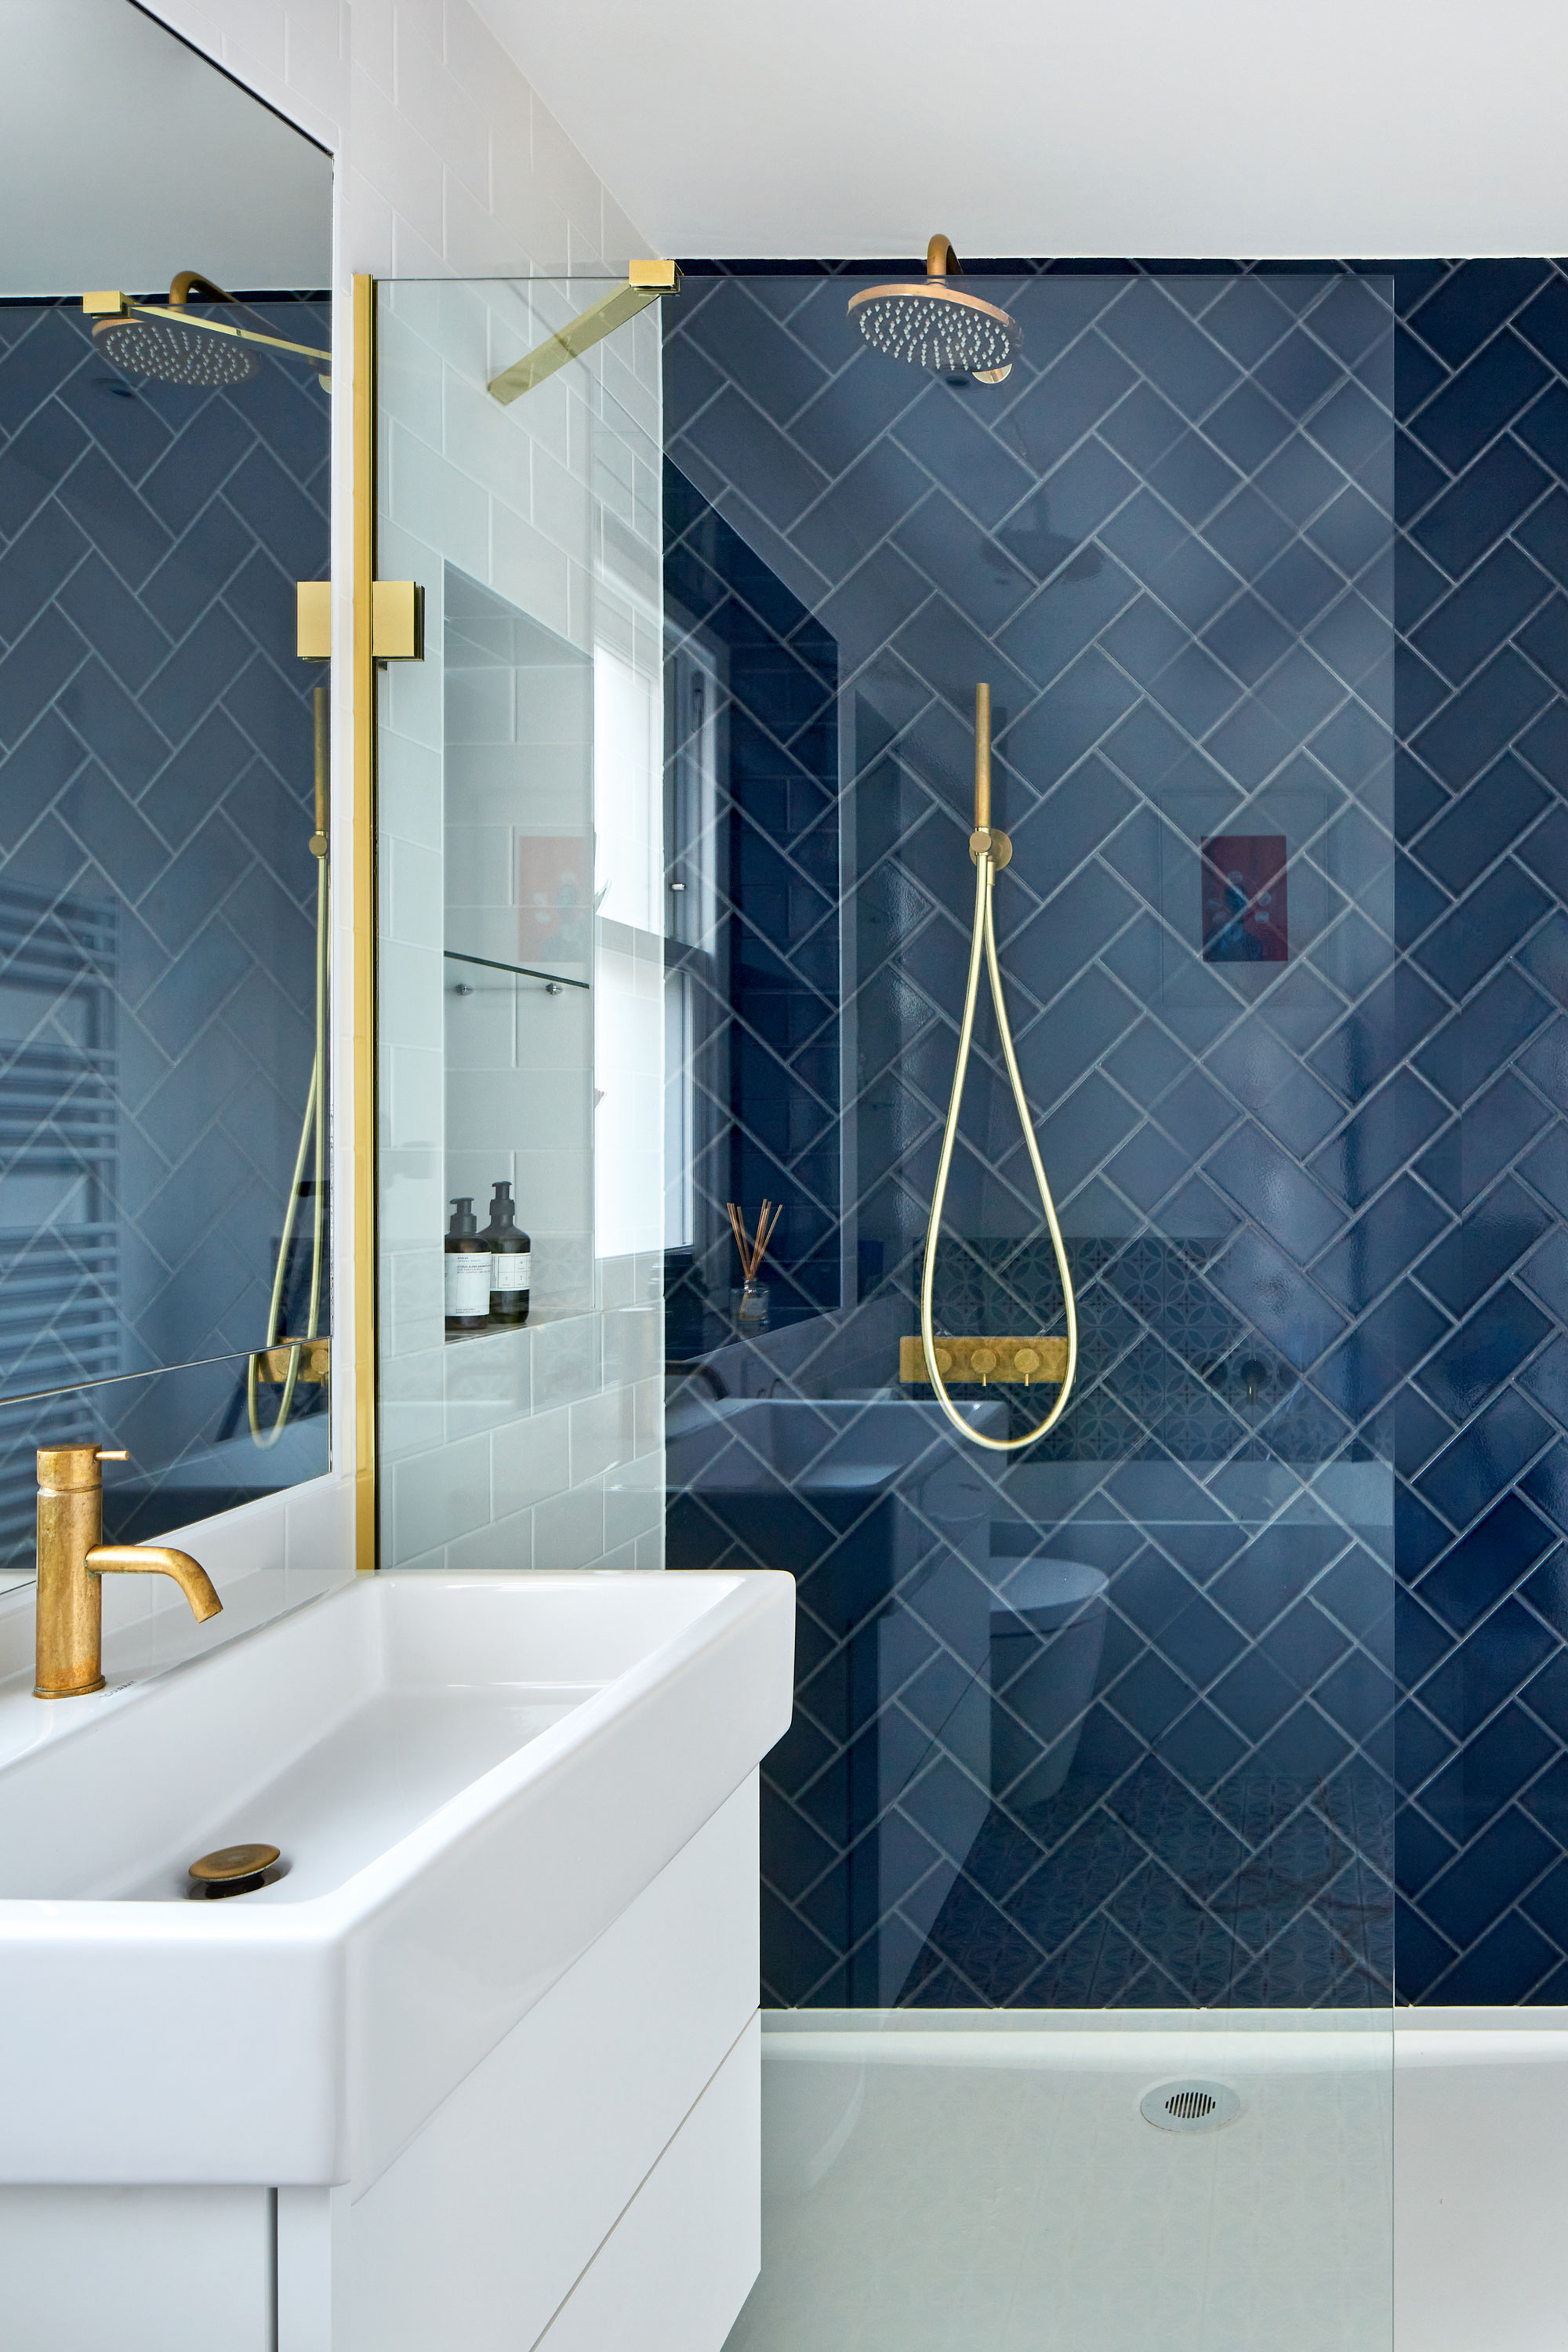 How To Tile A Shower Get Pro Finish, How To Cut Tiles Fit Around Pipes